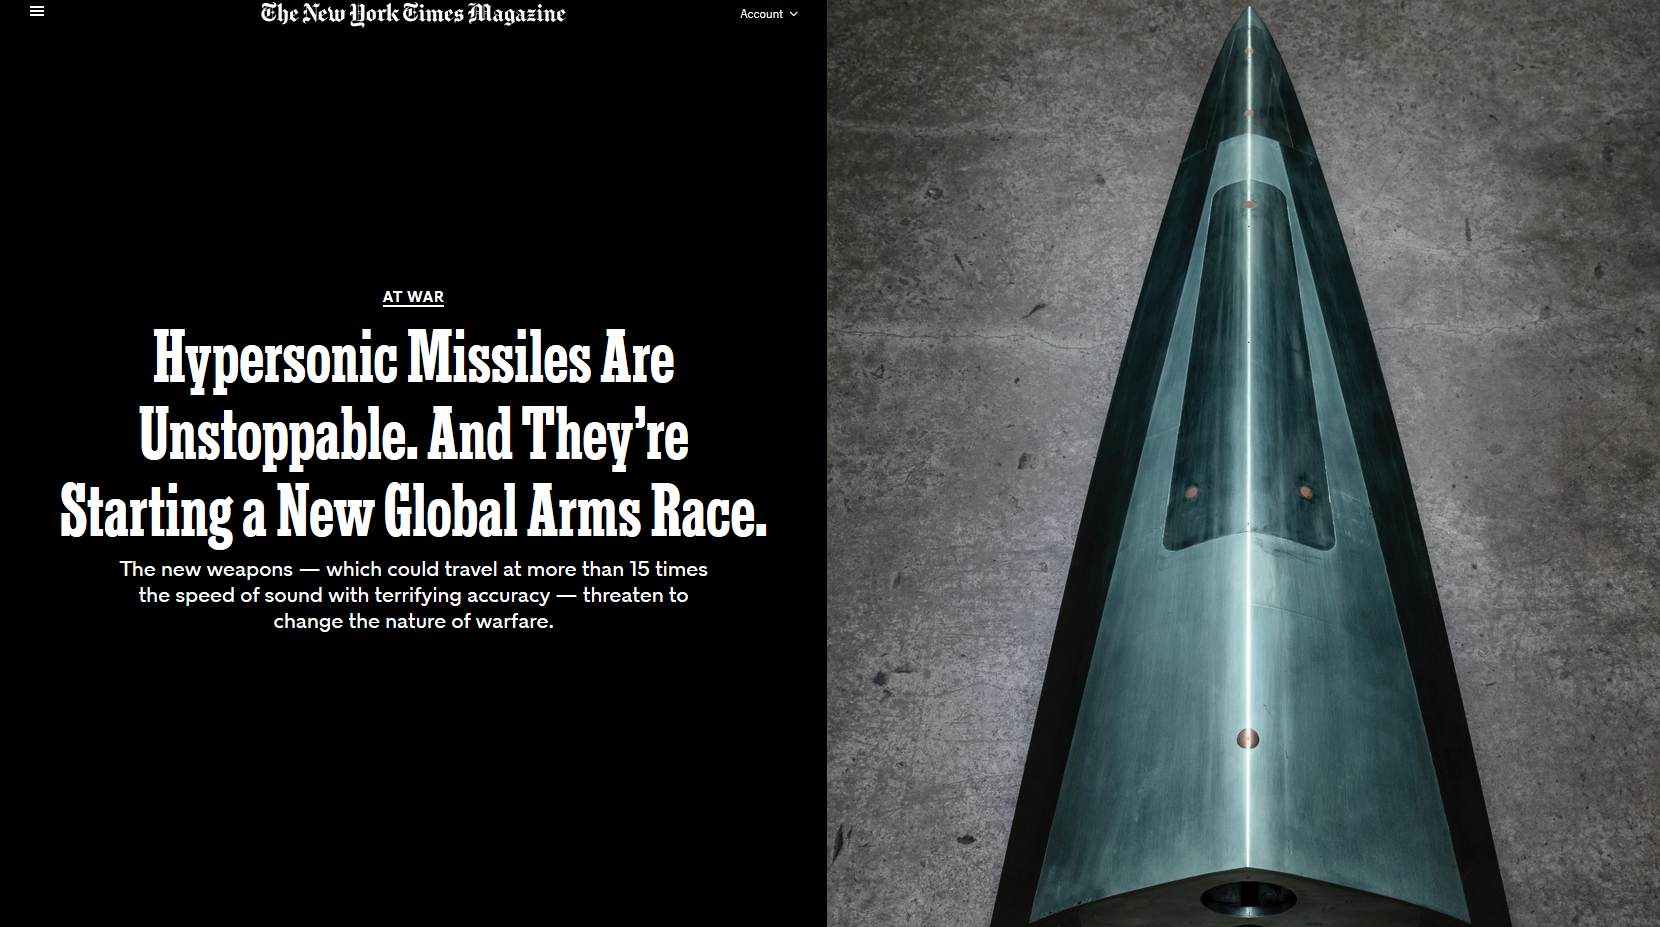 NYT: Hypersonic Missiles Are Unstoppable. And They're Starting a New Global Arms Race.